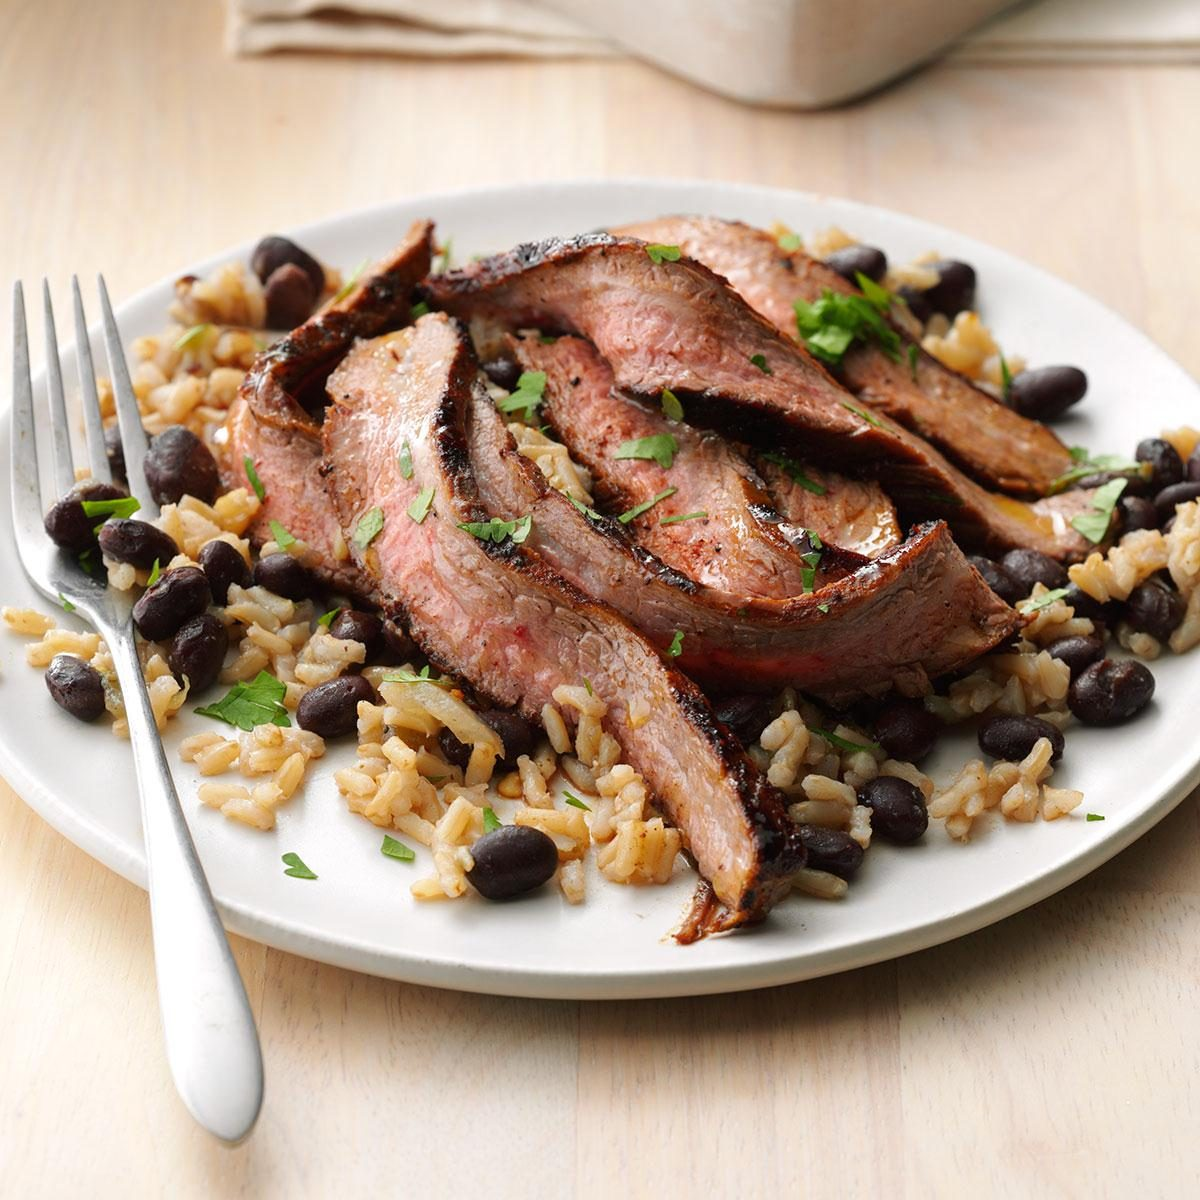 Chili-Rubbed Steak with Black Bean Salad